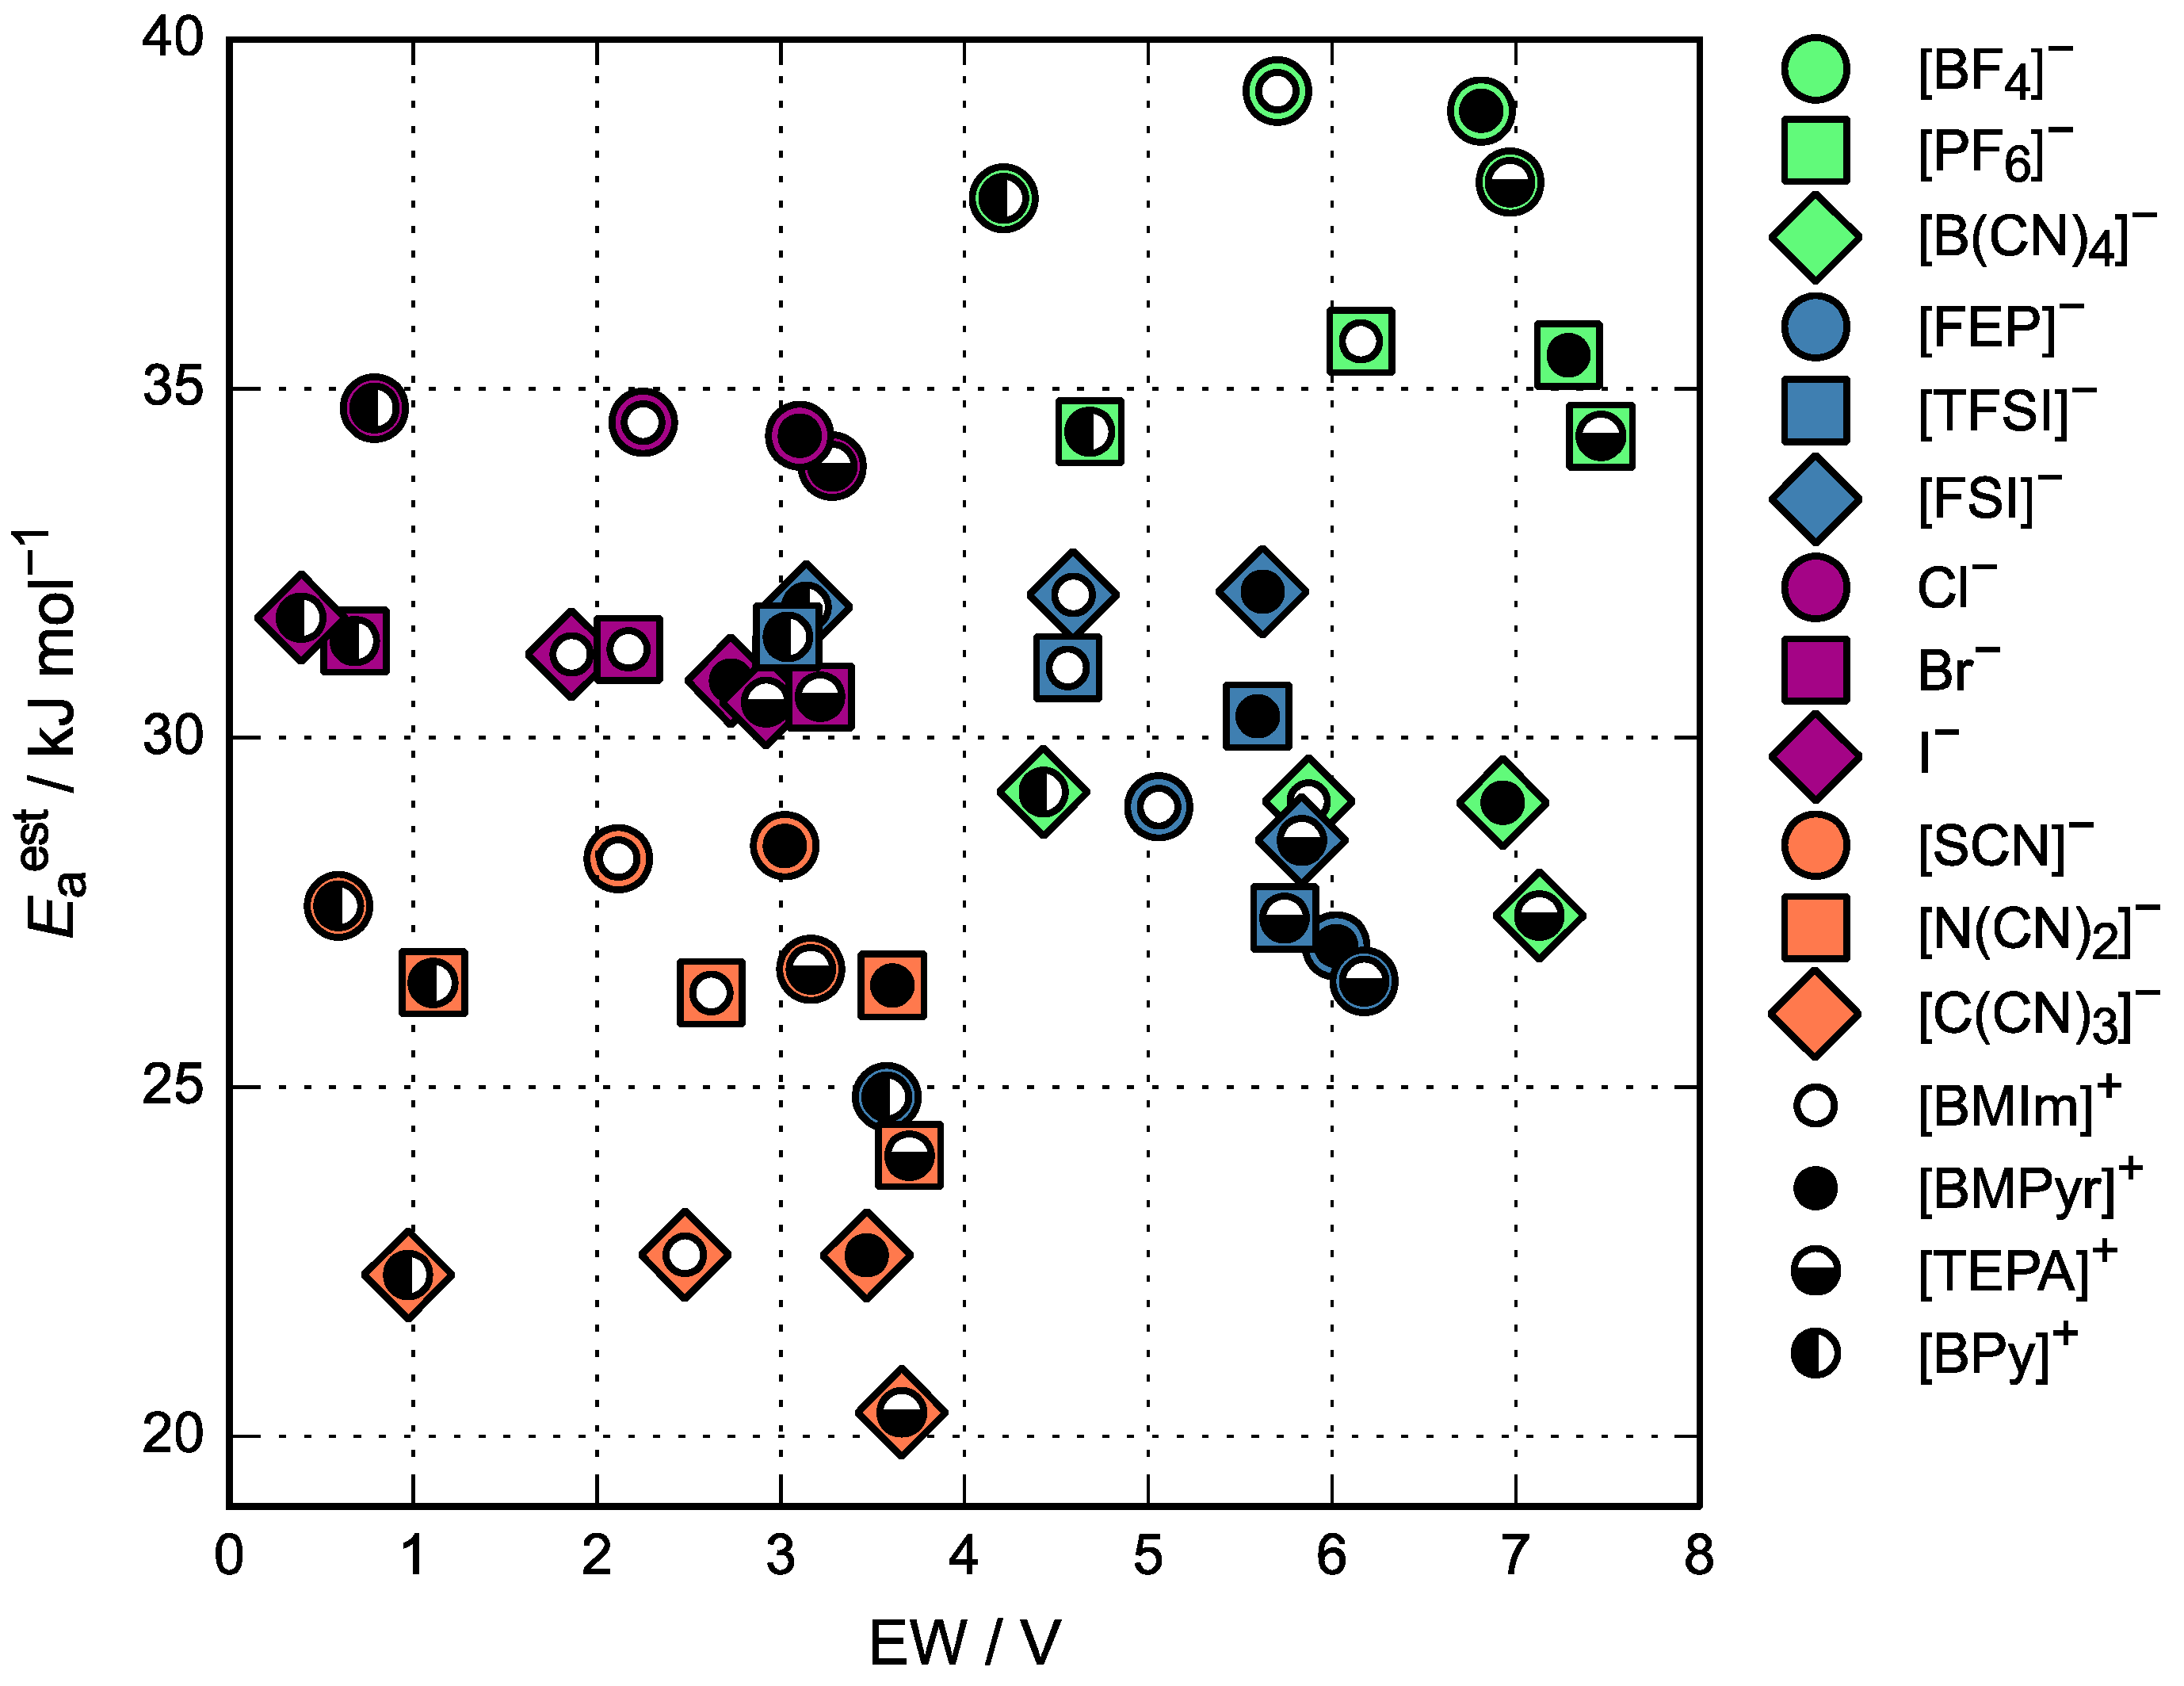 Figure 6 from the article.